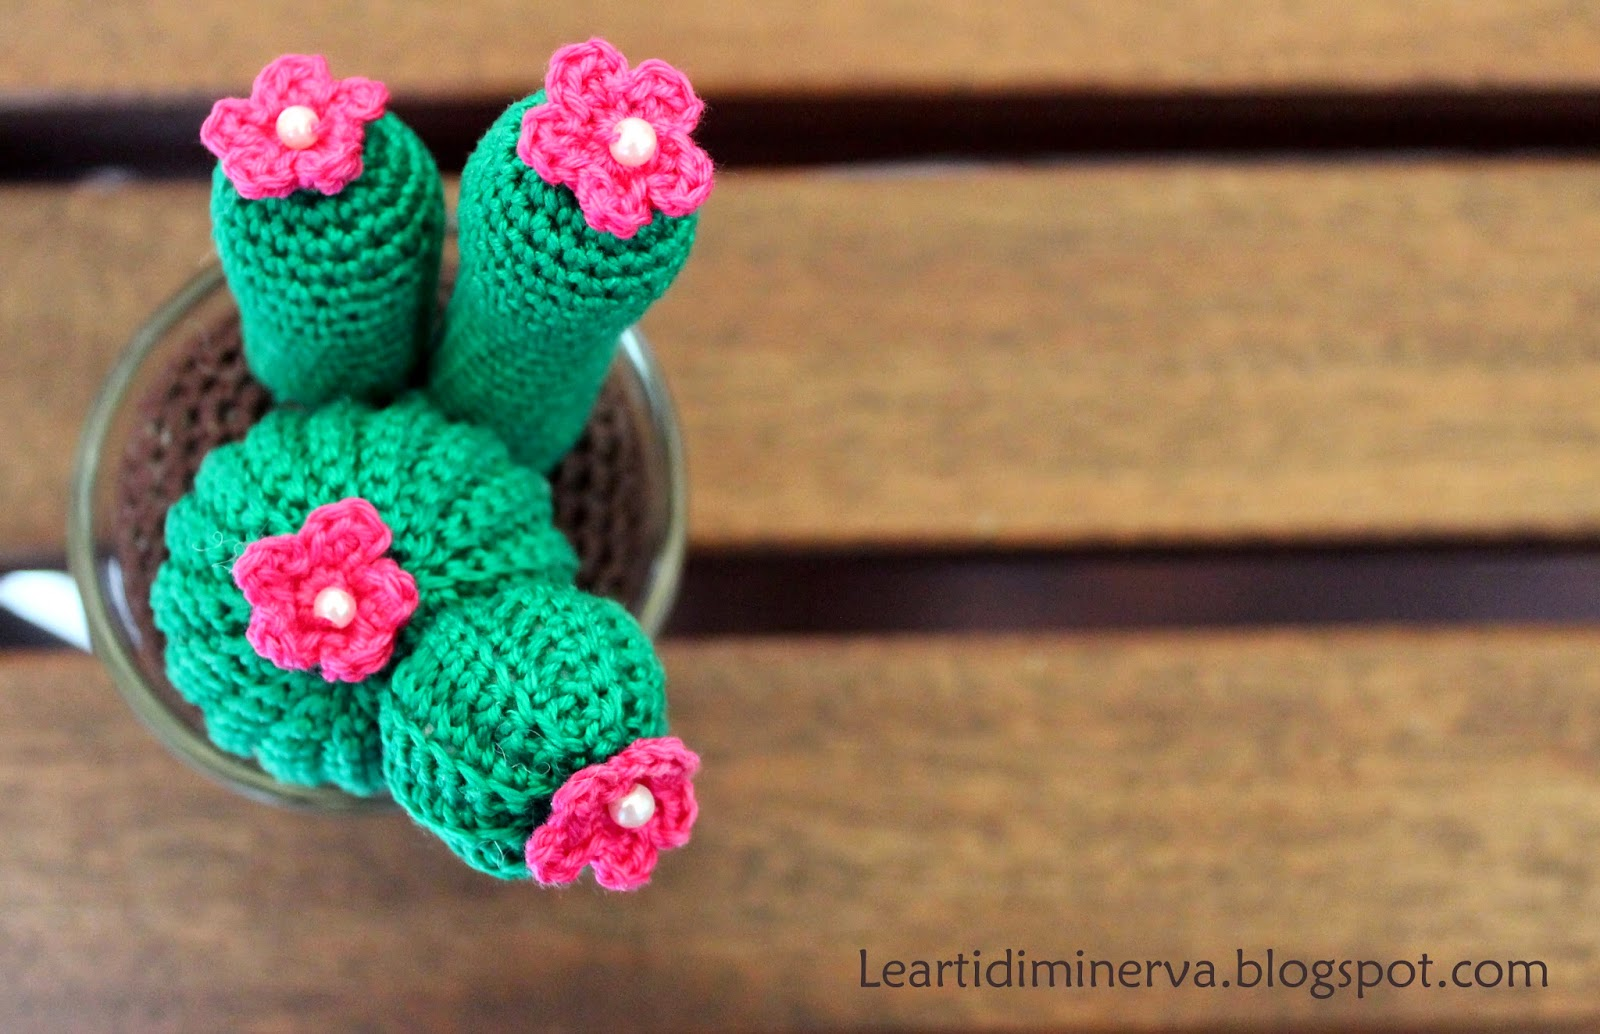 Free Crochet Pattern for a Cactus Amigurumi  Crochet Kingdom